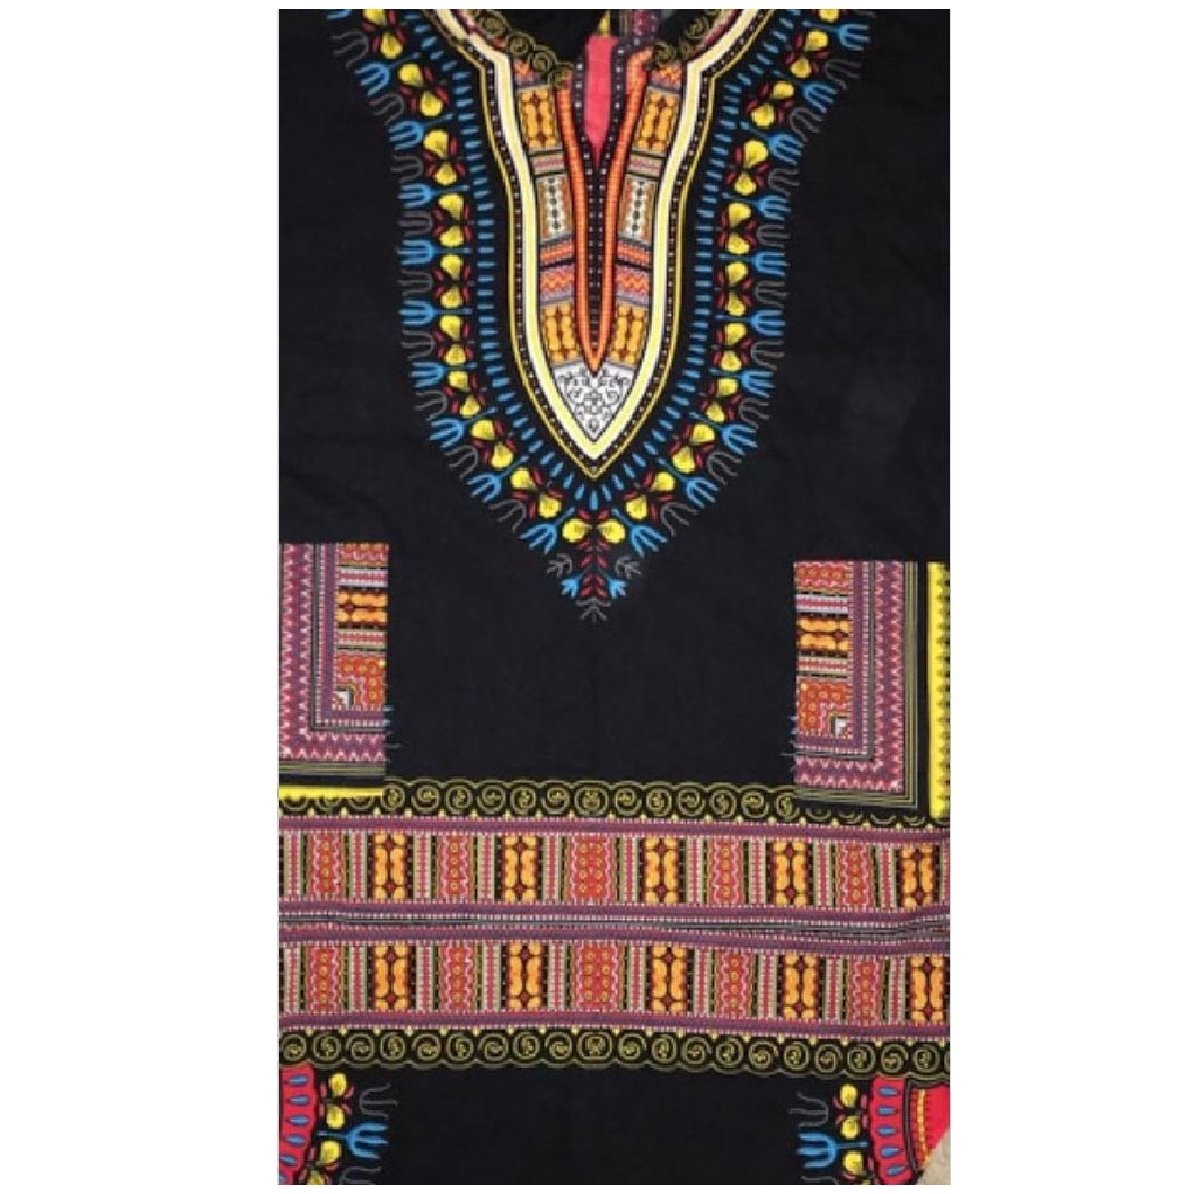 YUNY Men's African Printed Hood Mid Long Dashiki T-Shirt Top Tees Black L